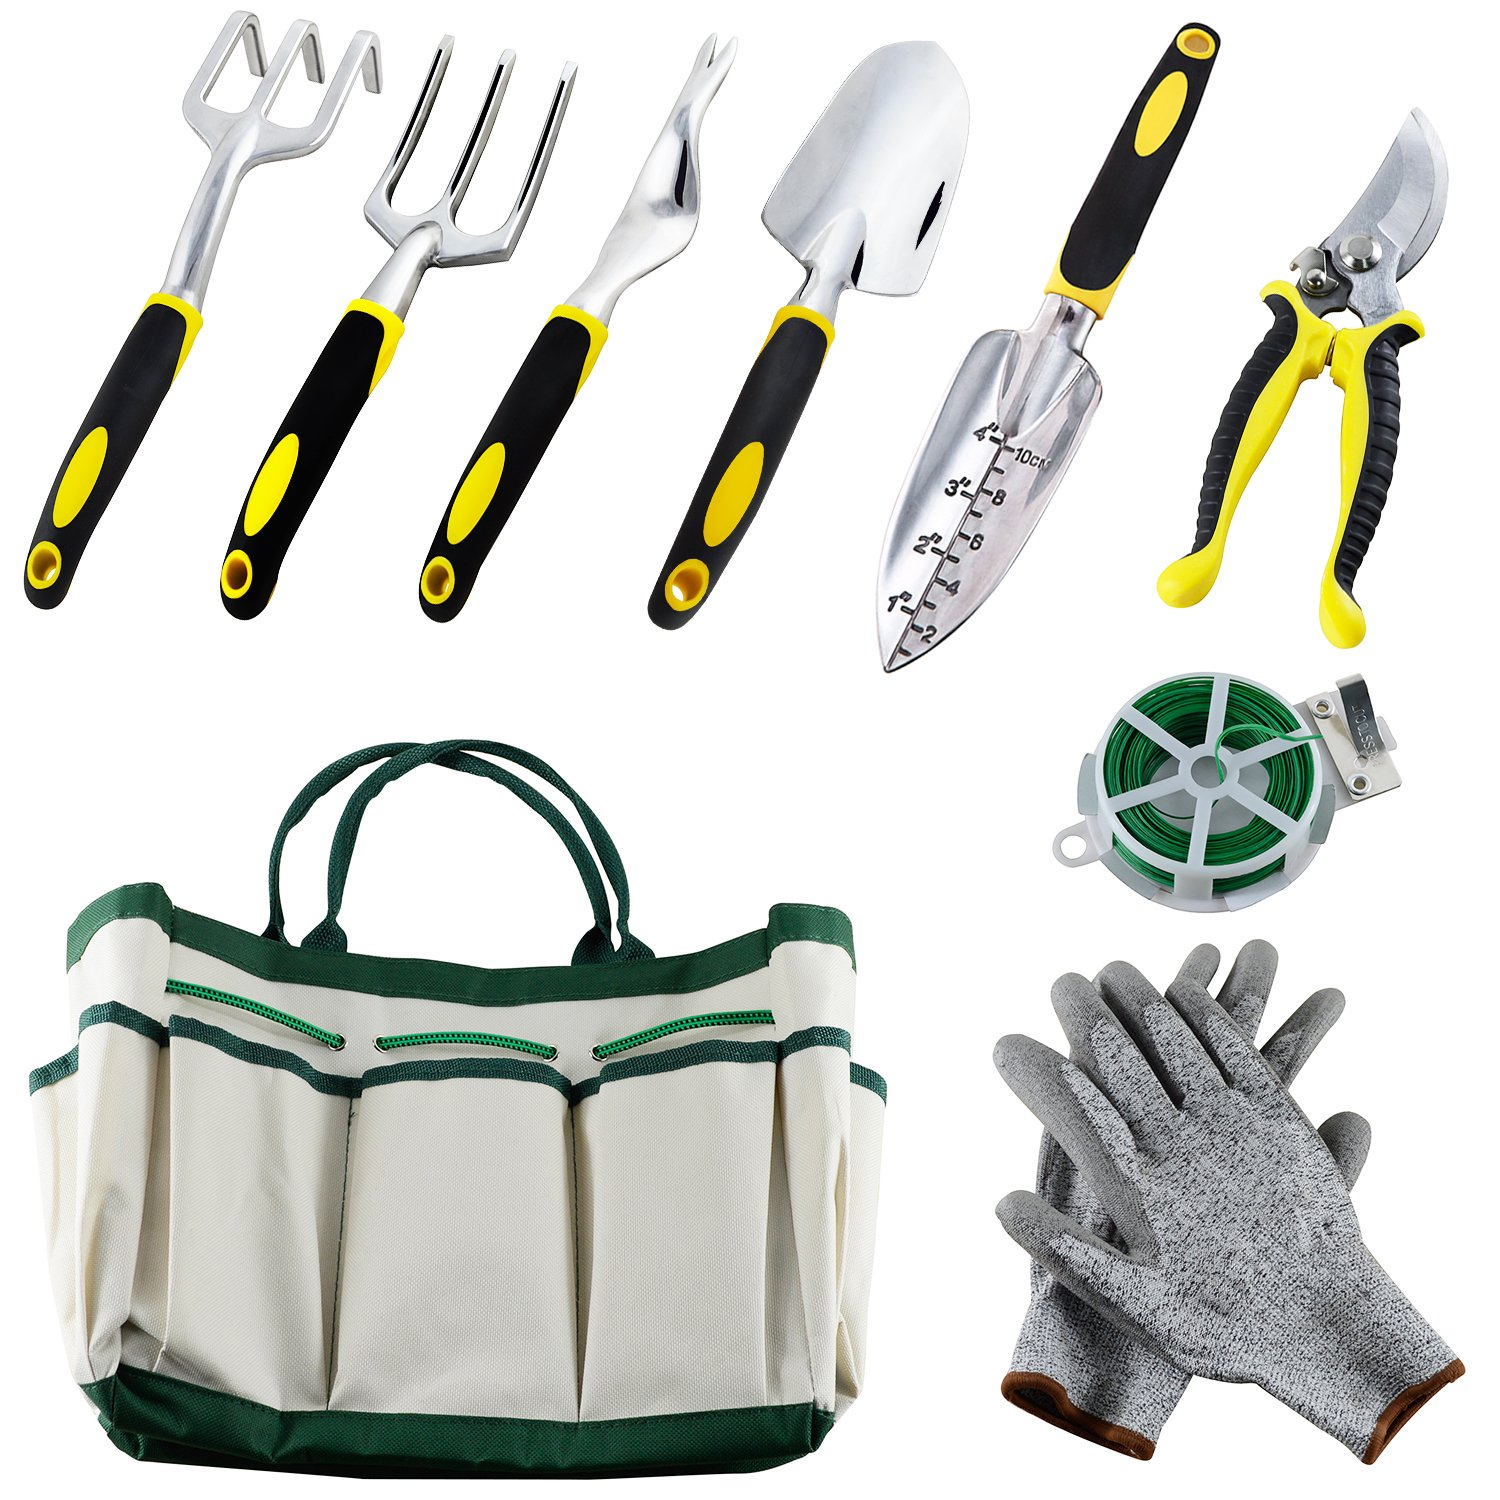 Auelife Garden Tools Set, Aluminum Alloy Hand Gardening Kit with a Plant Rope, Soft Gloves, a Garden Tote and 6 pcs Garden tools with Non-Slip Handle